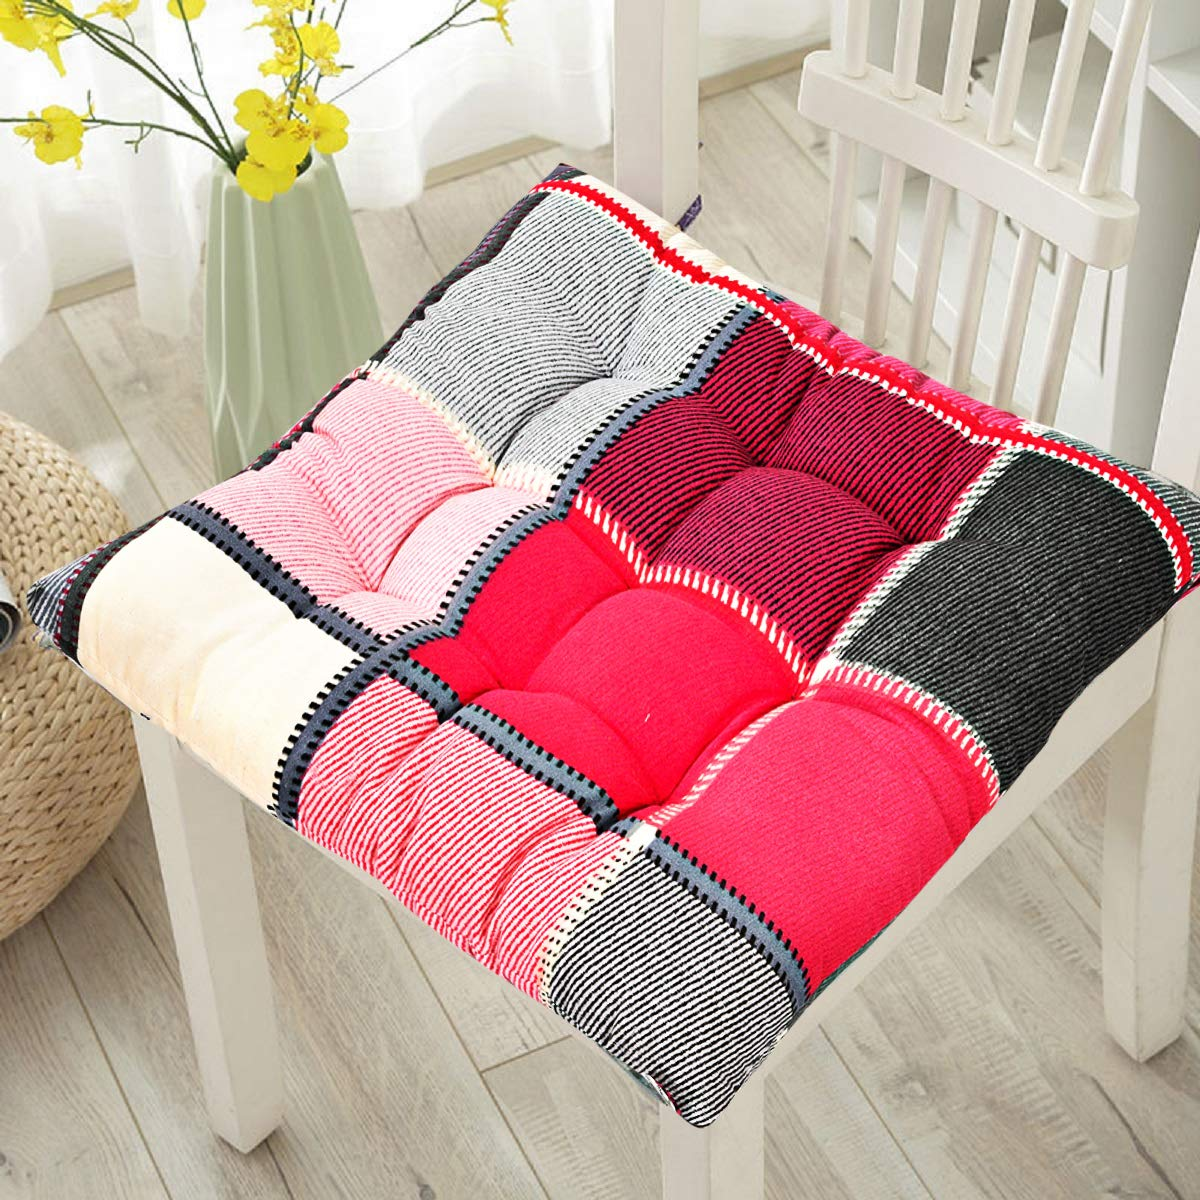 """RRC® Chair Pads w/Ties  8"""" x 8"""" Square, Pack of 8  Extra-Comfortable &  Soft Seat Cushions  Ergonomic Pillows for Rocking, Dining, Patio, Camping,"""